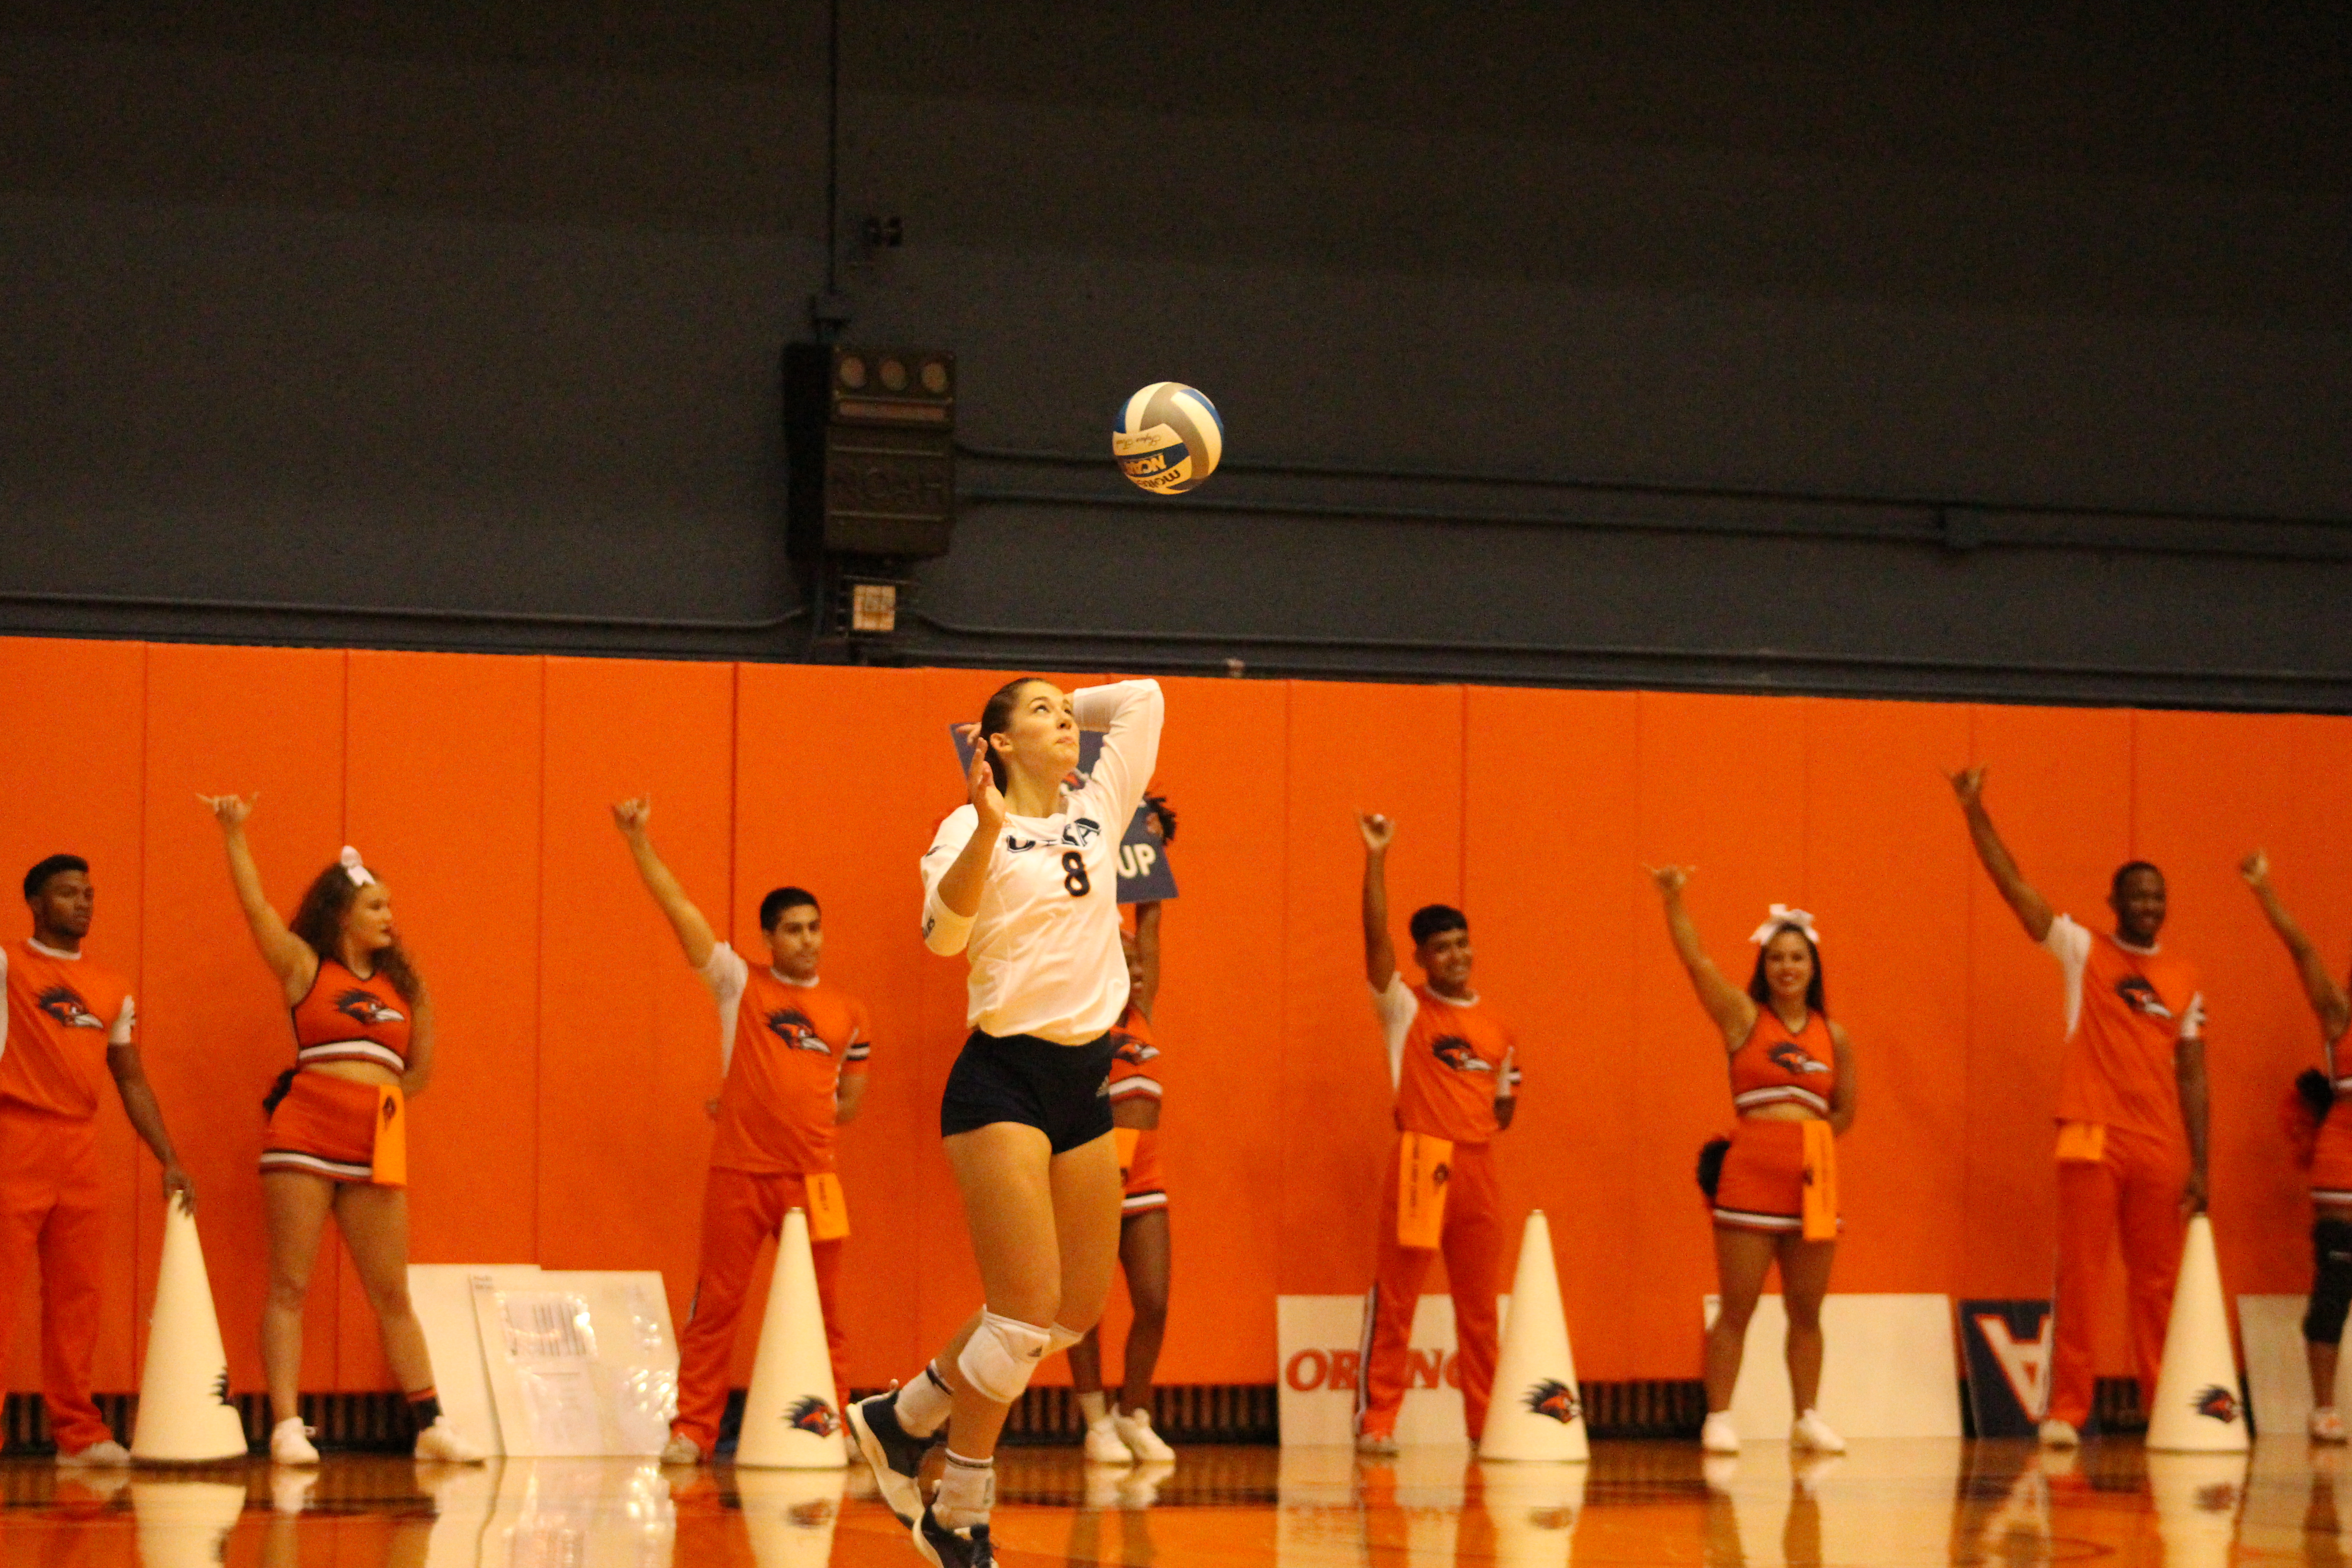 Courtney Walters serves an ace against the Charlotte 49ers.